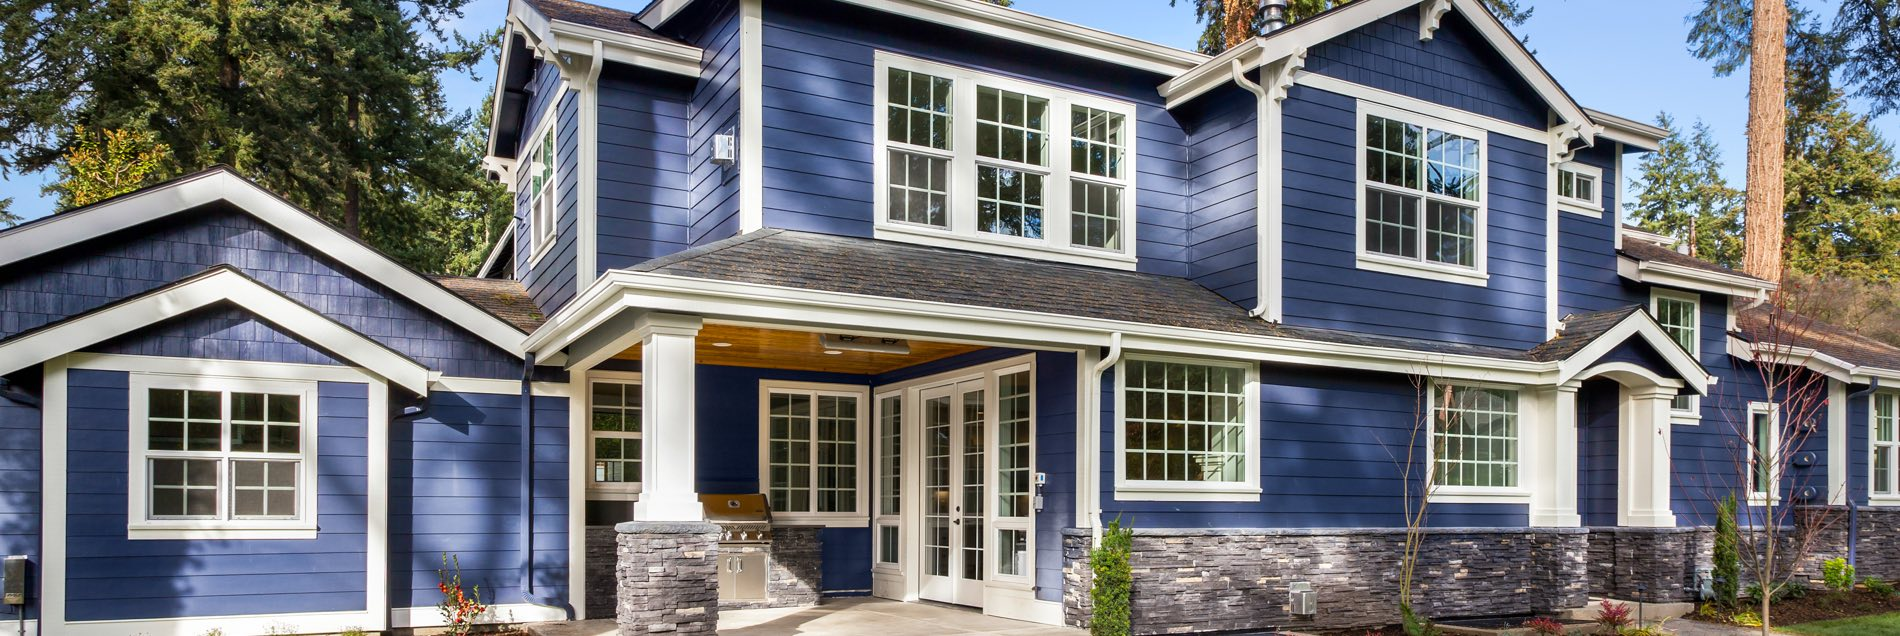 Blue home on wooded lot